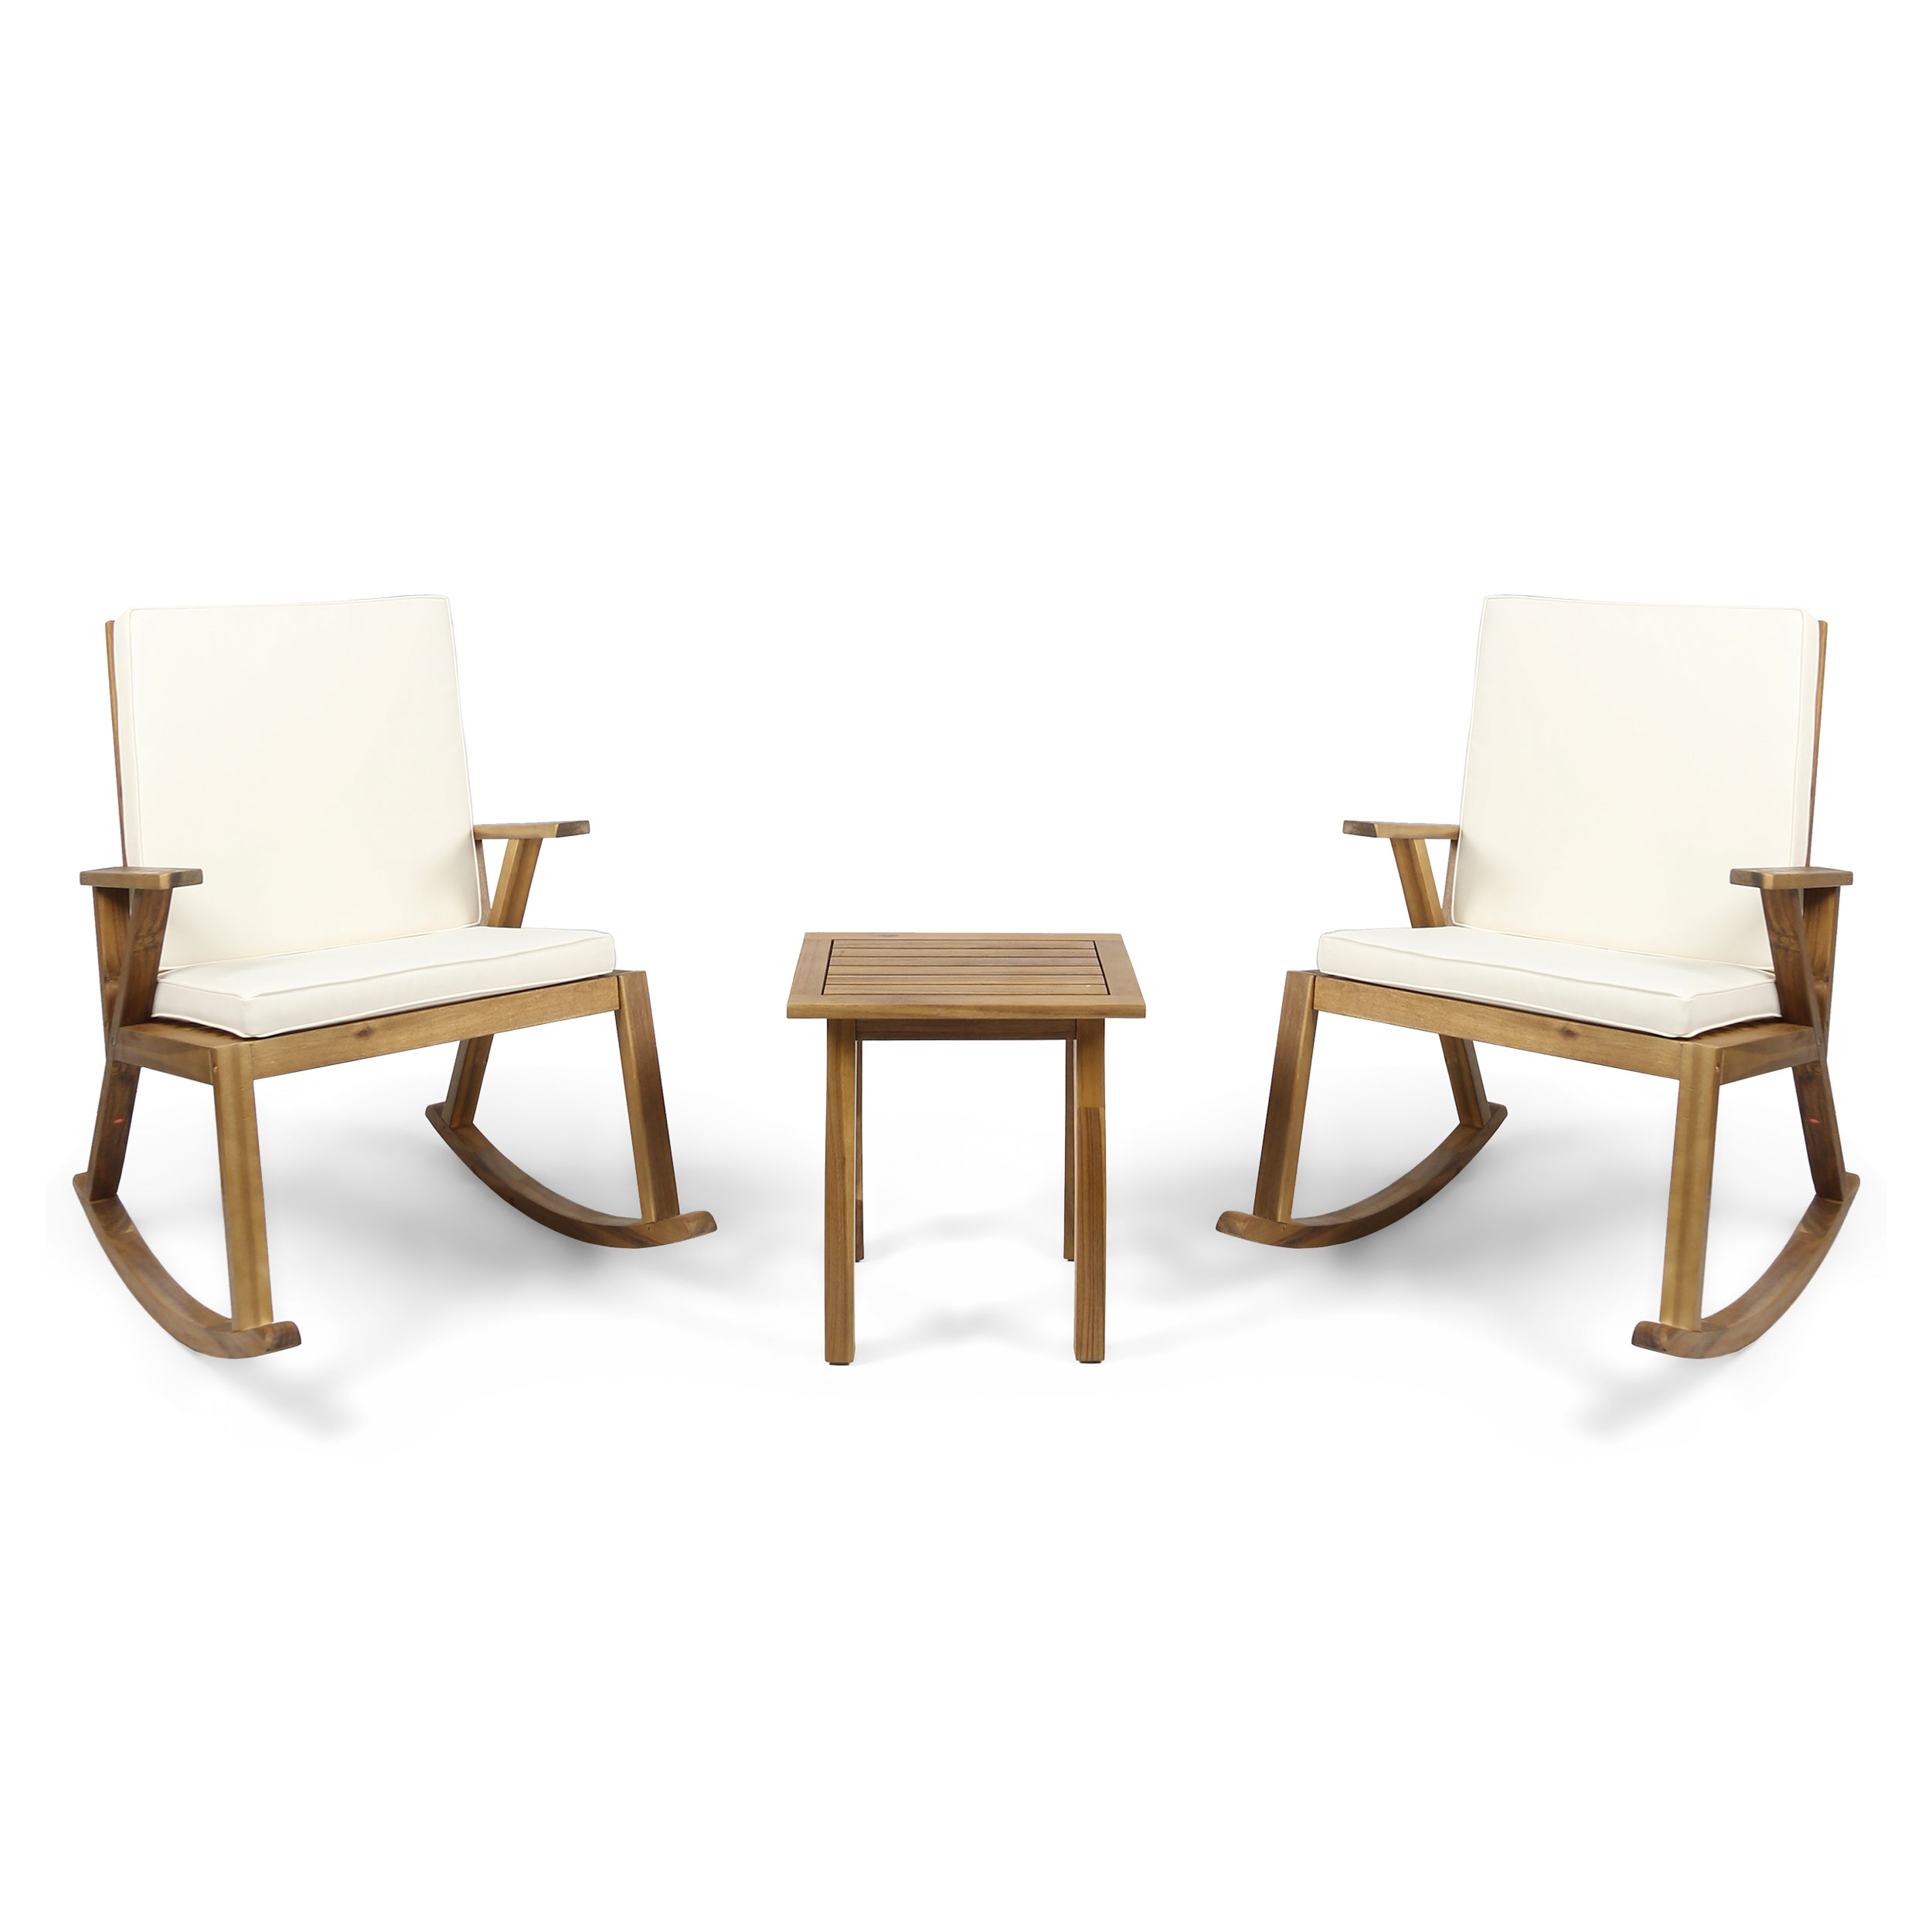 Alize Outdoor Acacia Wood Rocking Chair Chat Set